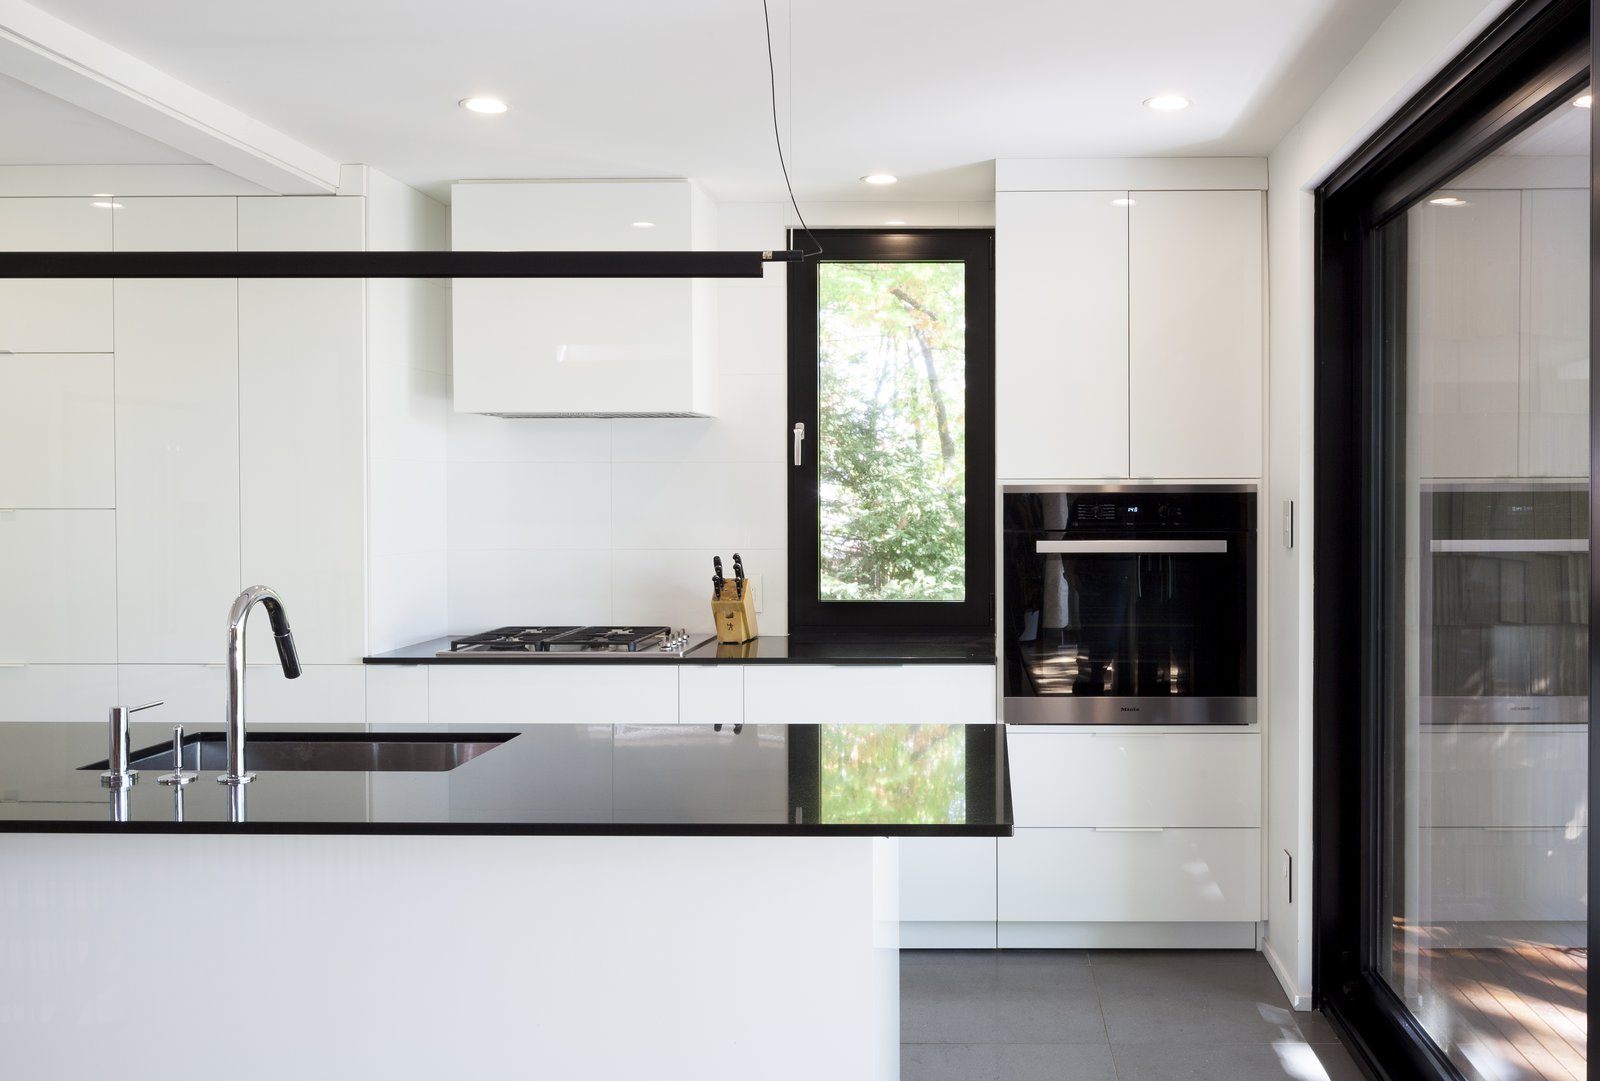 Kitchen - Rue de l'Espéranto residence  - Guillaume Sasseville & PARKA - Architecture & Design Tagged: Kitchen, White, Ceiling, Ceramic Tile, Ceramic Tile, Track, Pendant, Wall Oven, Undermount, and Cooktops.  Best Kitchen White Track Photos from Rue de l'Espéranto residence